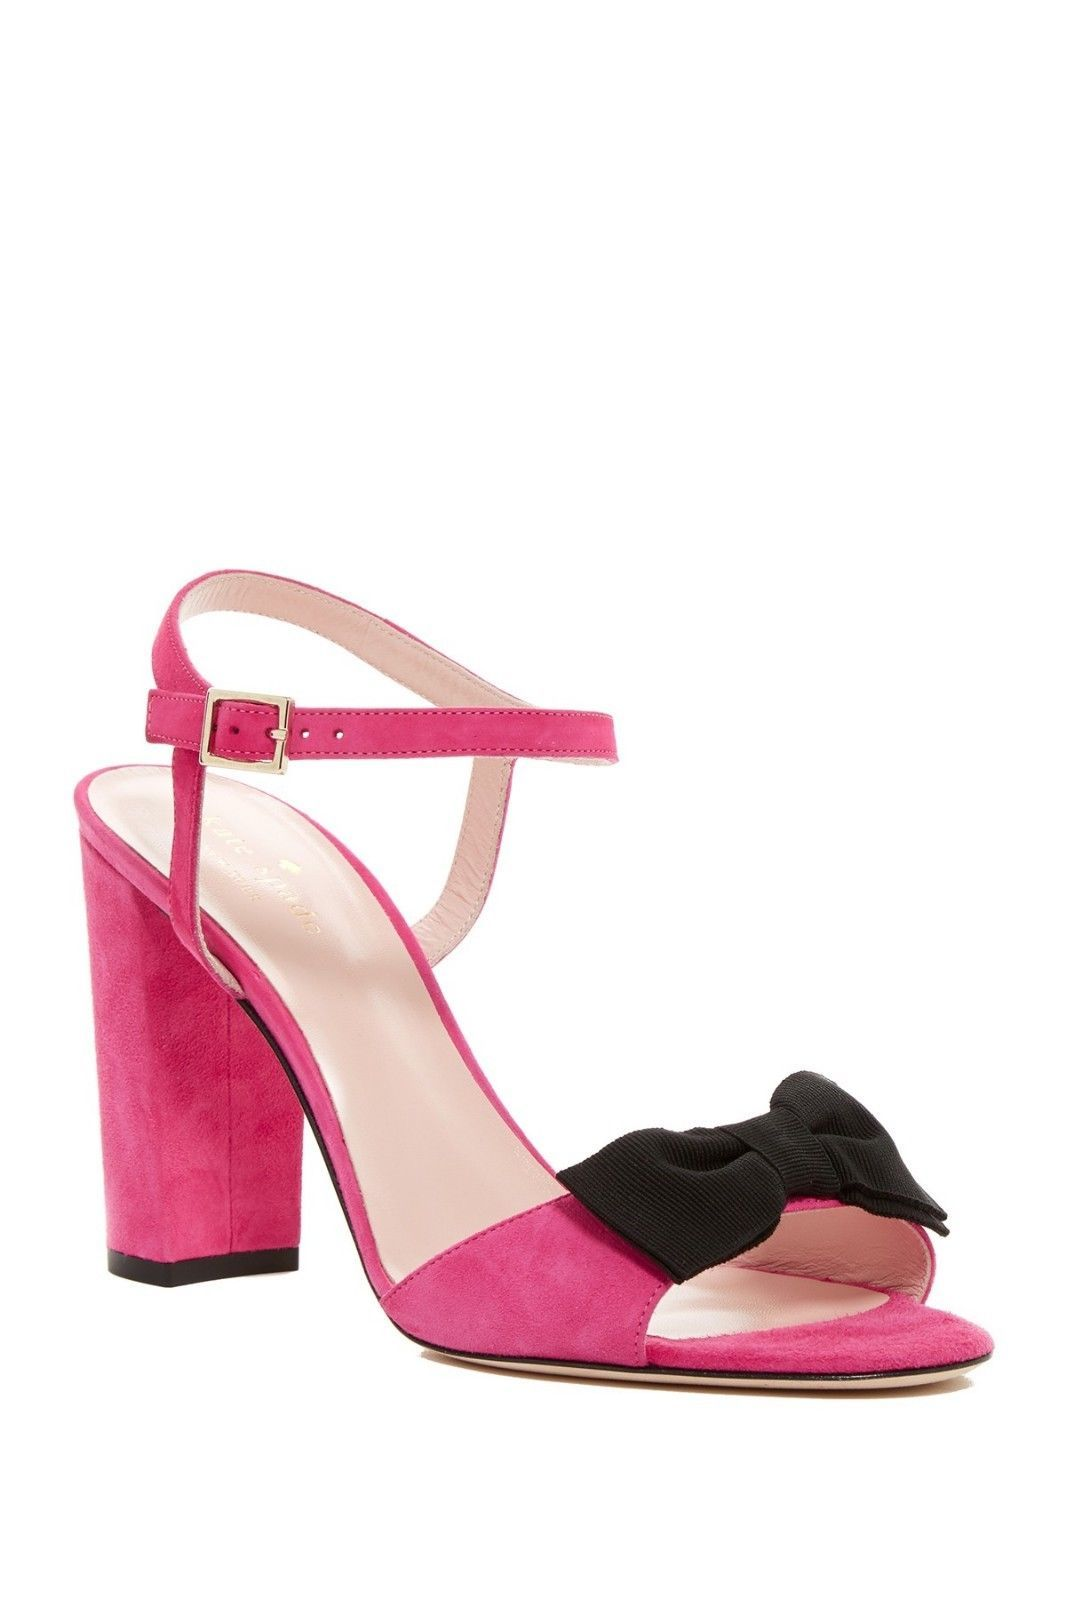 8be4064fd663 kate spade new york - isabelle too block heel sandals PINK SWIRL Size 10.5  -  148.50